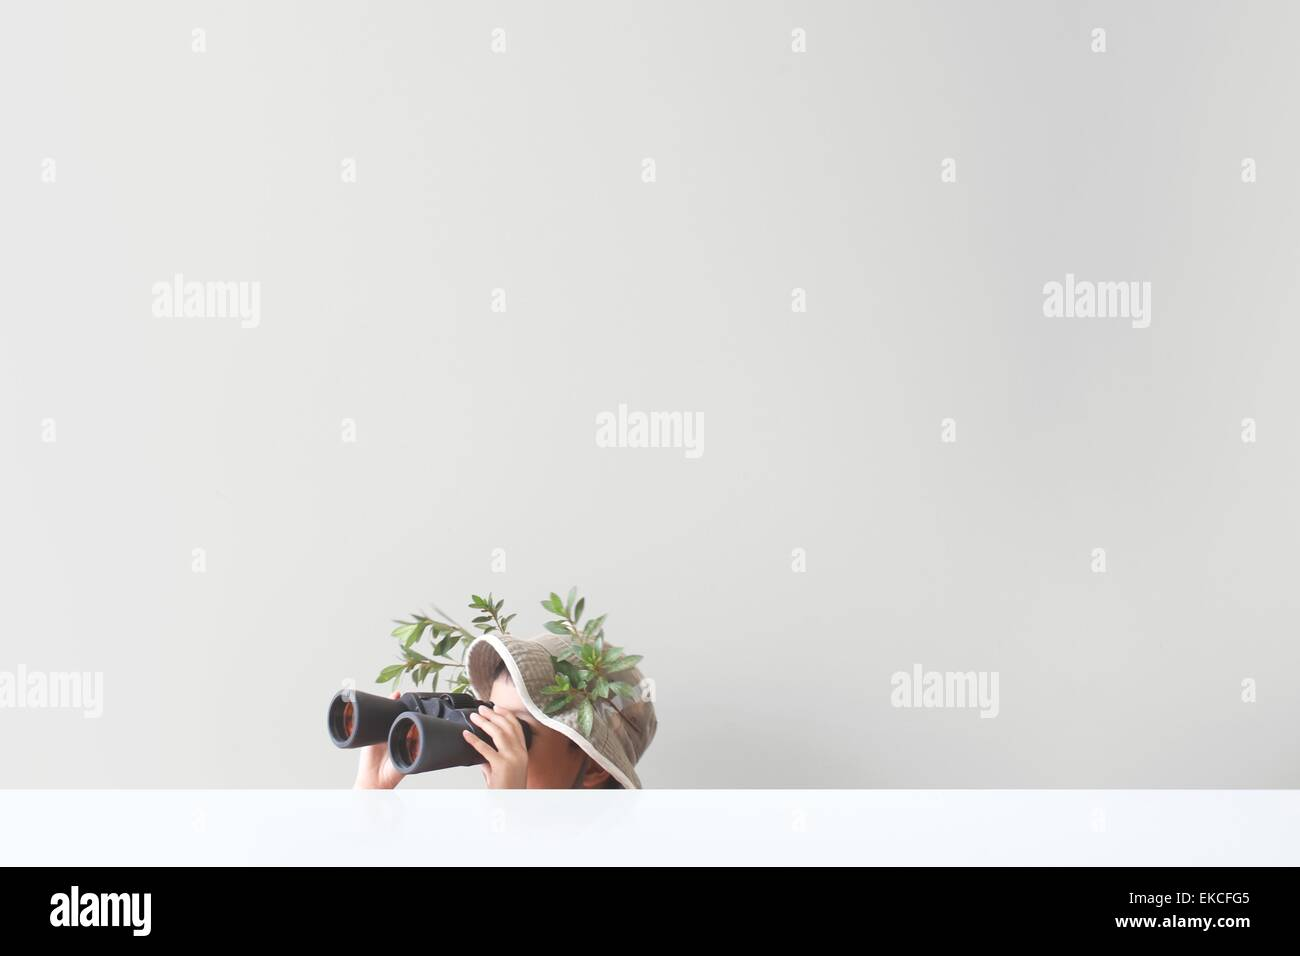 Boy looking through binoculars with some leaves and tree branches stuck on his safari hat - Stock Image